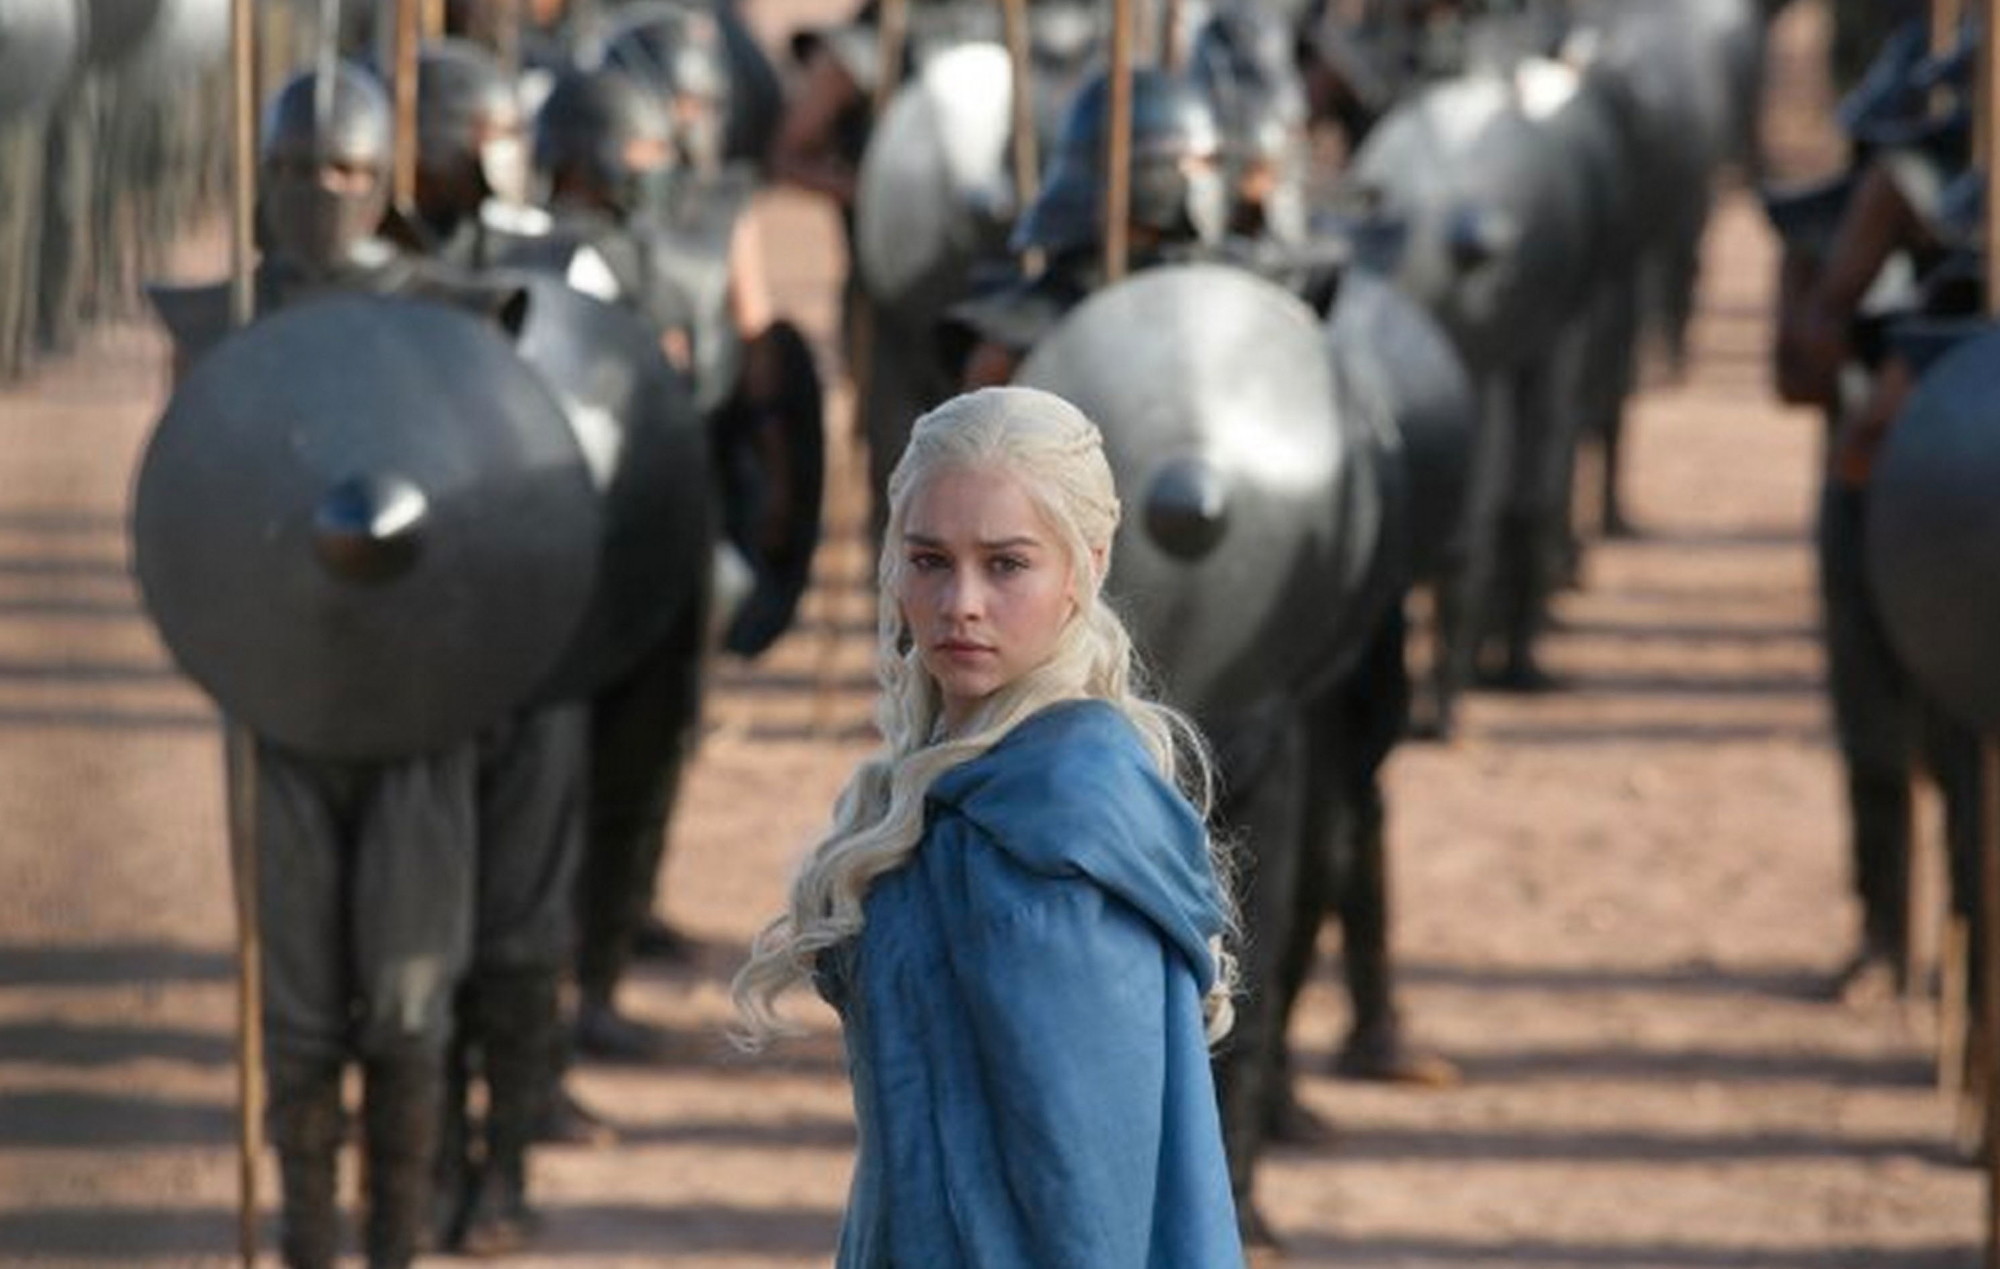 Game of Thrones' coffee cup saga reignited after suspect's